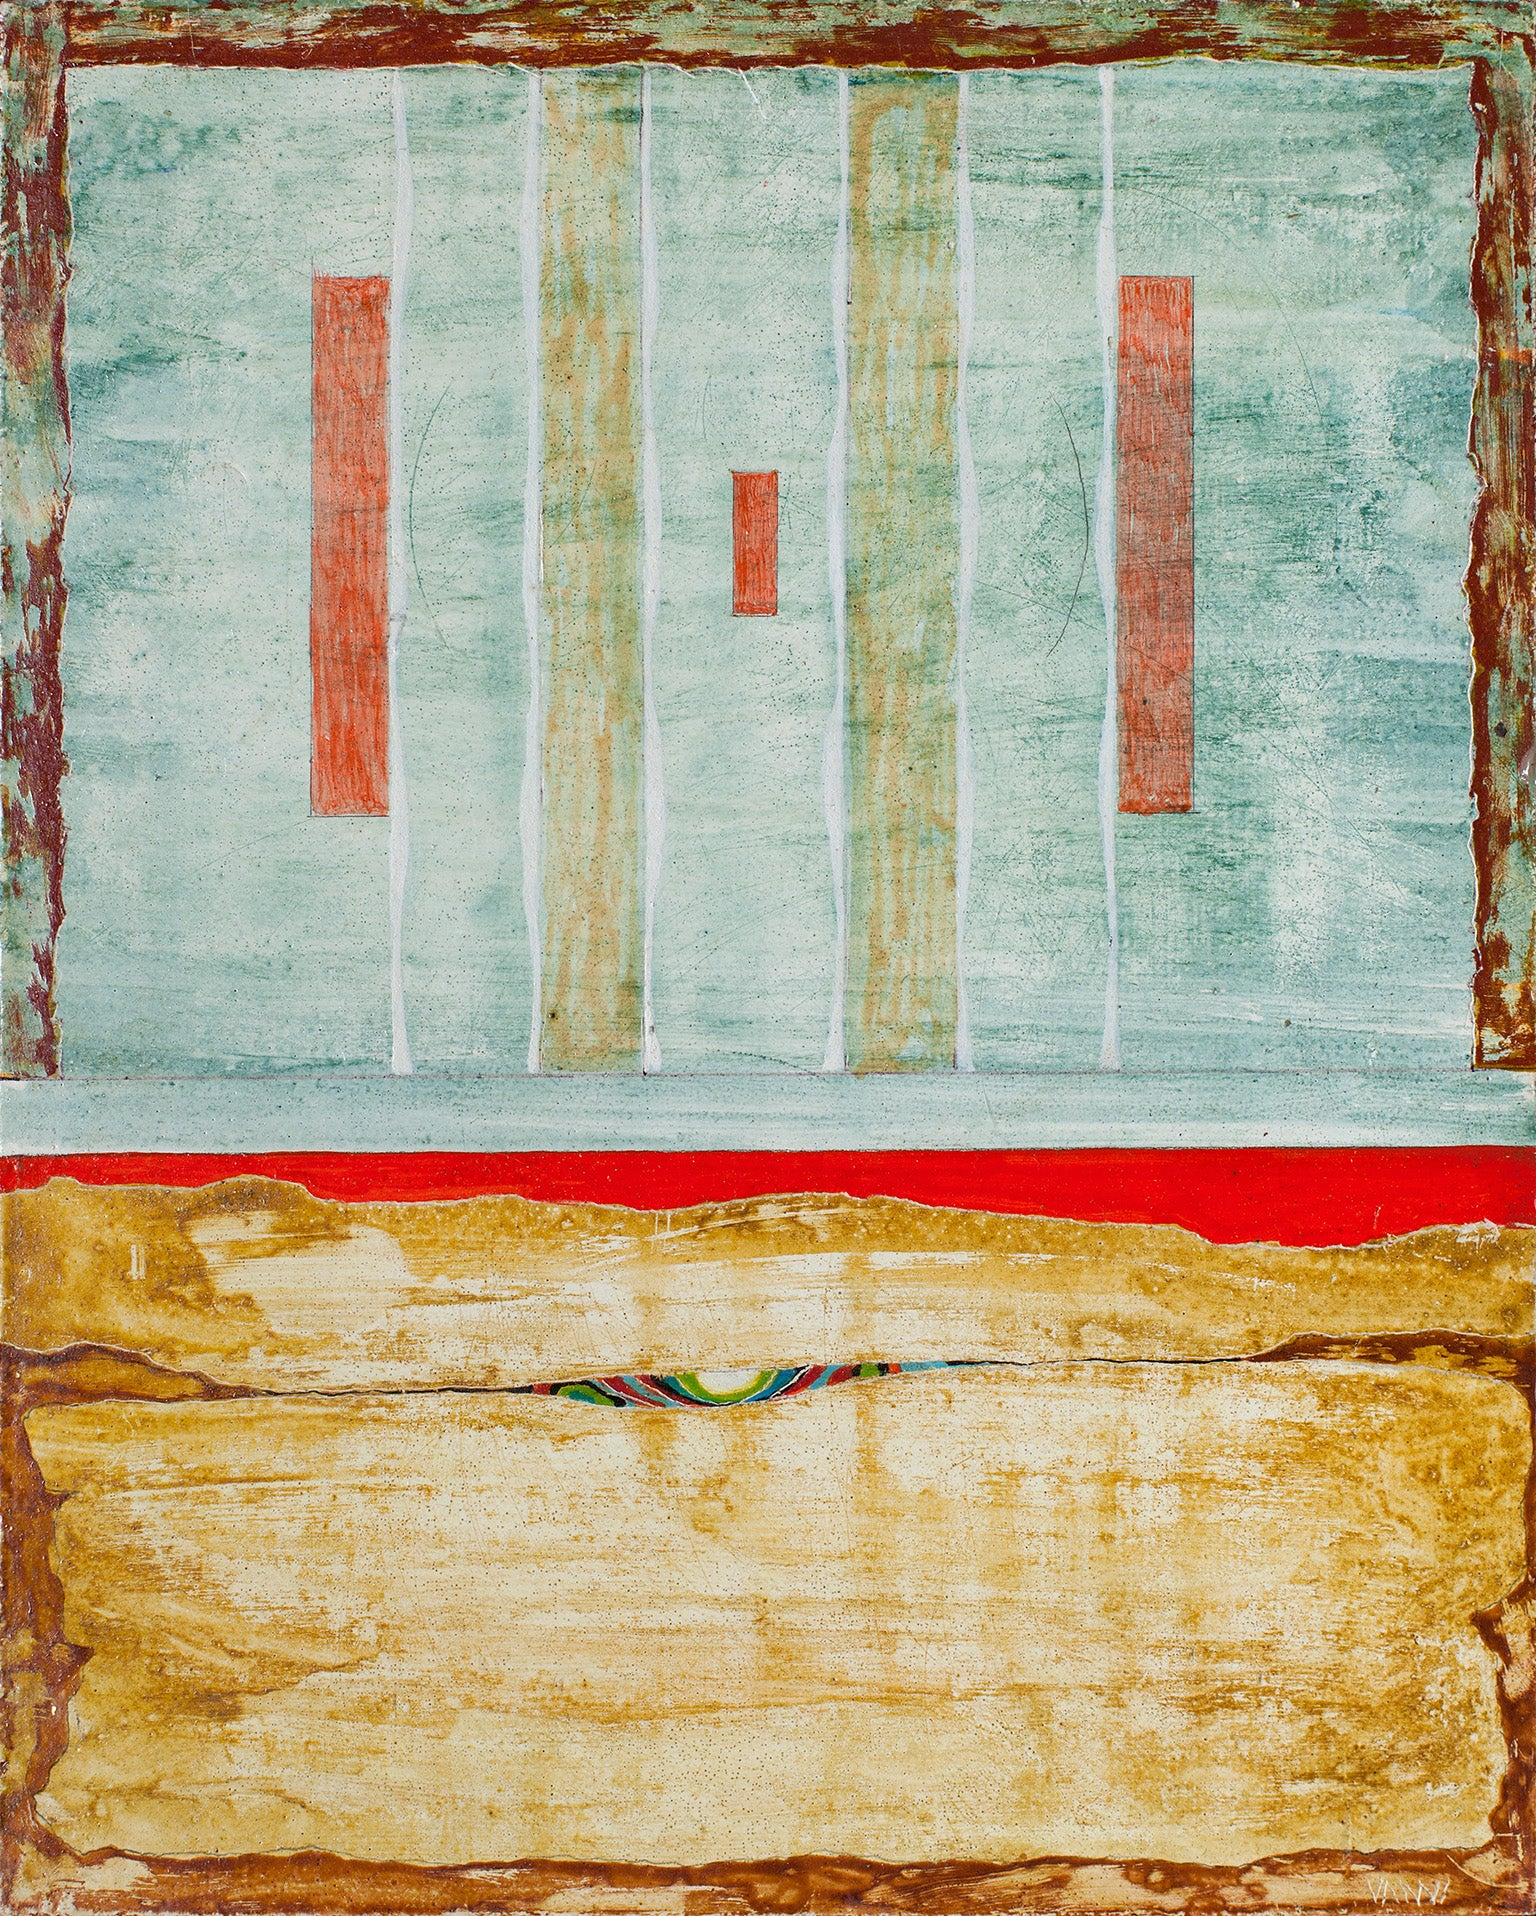 The Monument and the Desert - Small Abstract Geometric Panel Painting